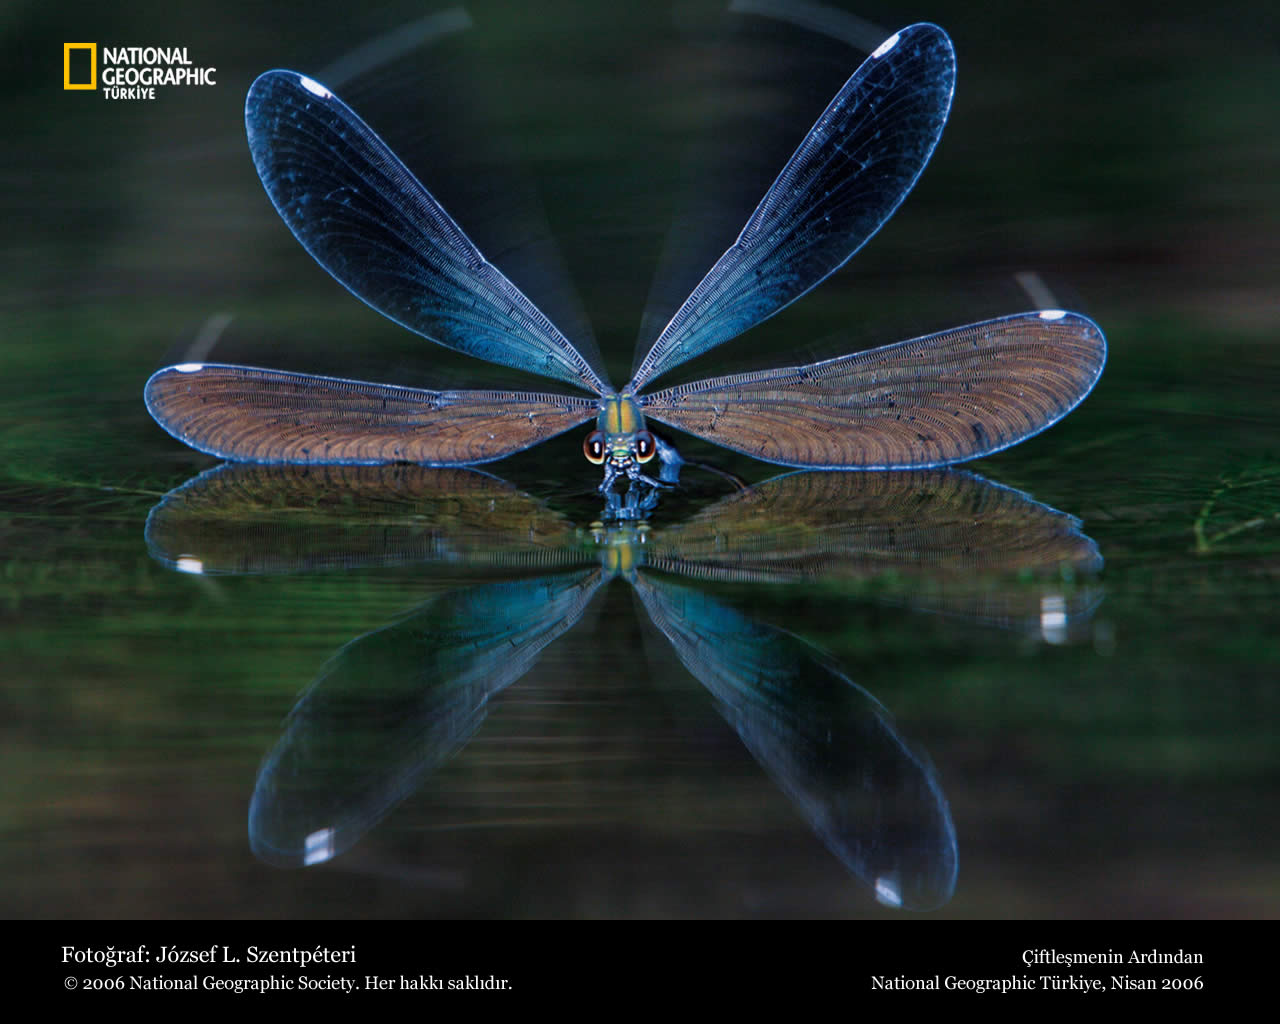 Funny Dragonfly wallpaper for desktop Amazing Wallpapers 1280x1024